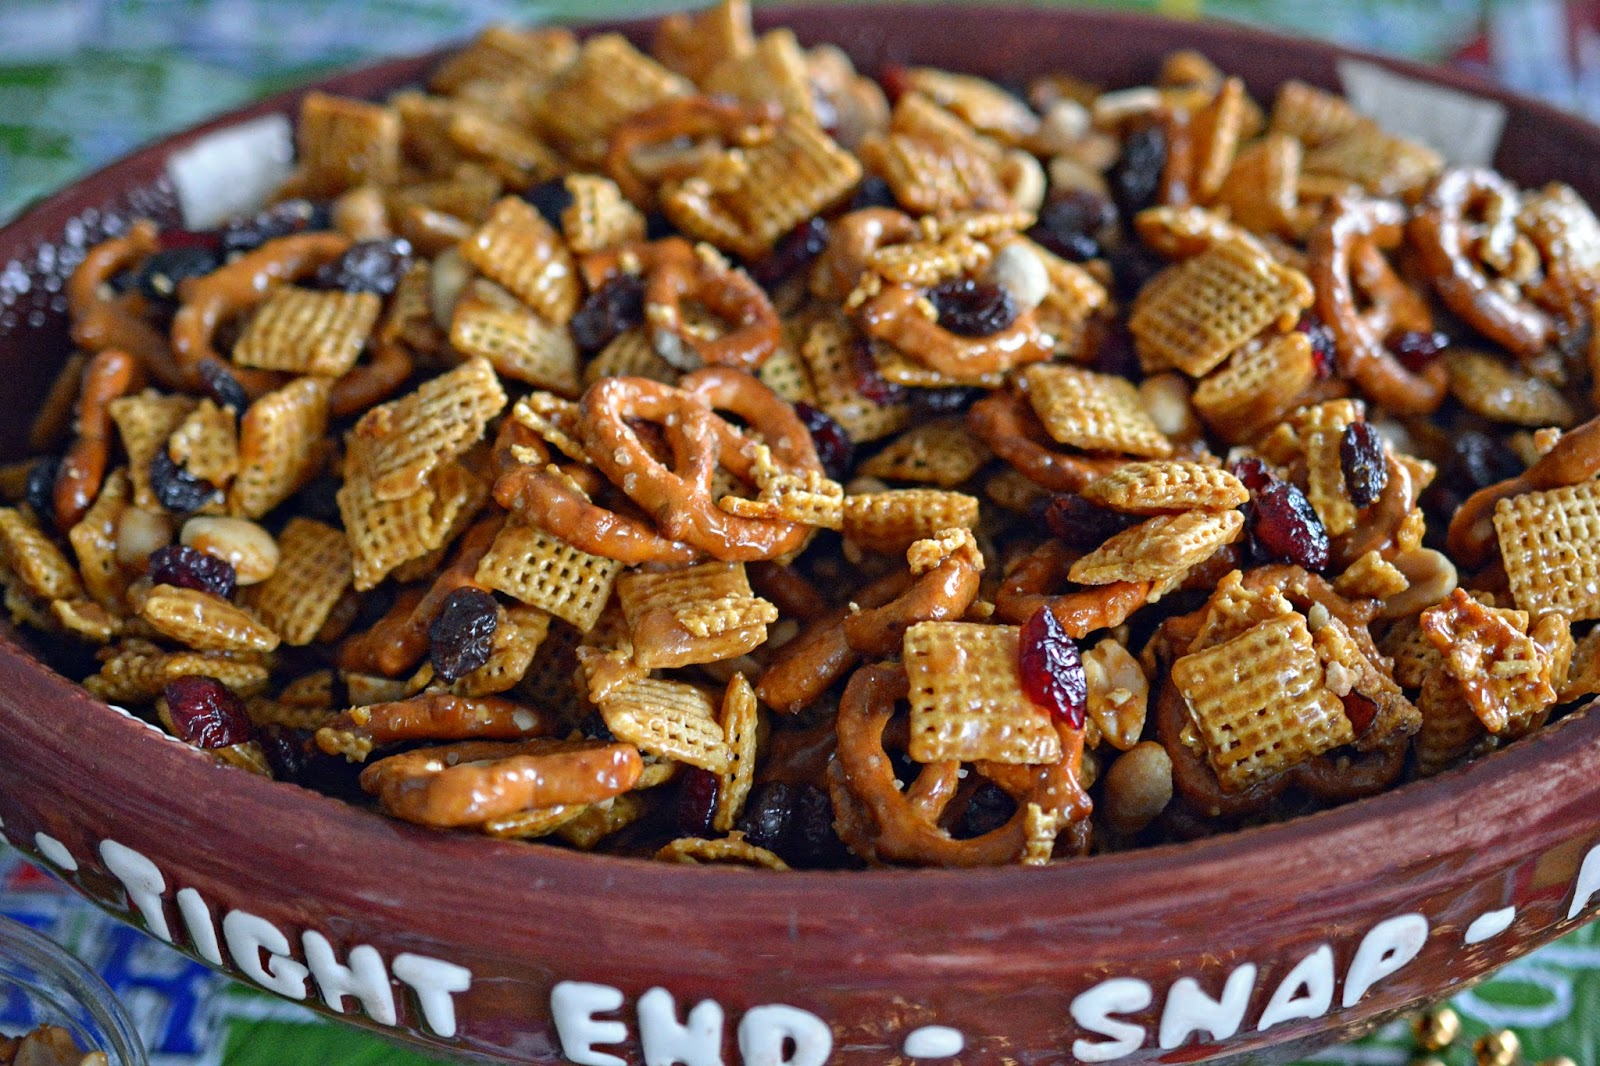 Party Mix Chex